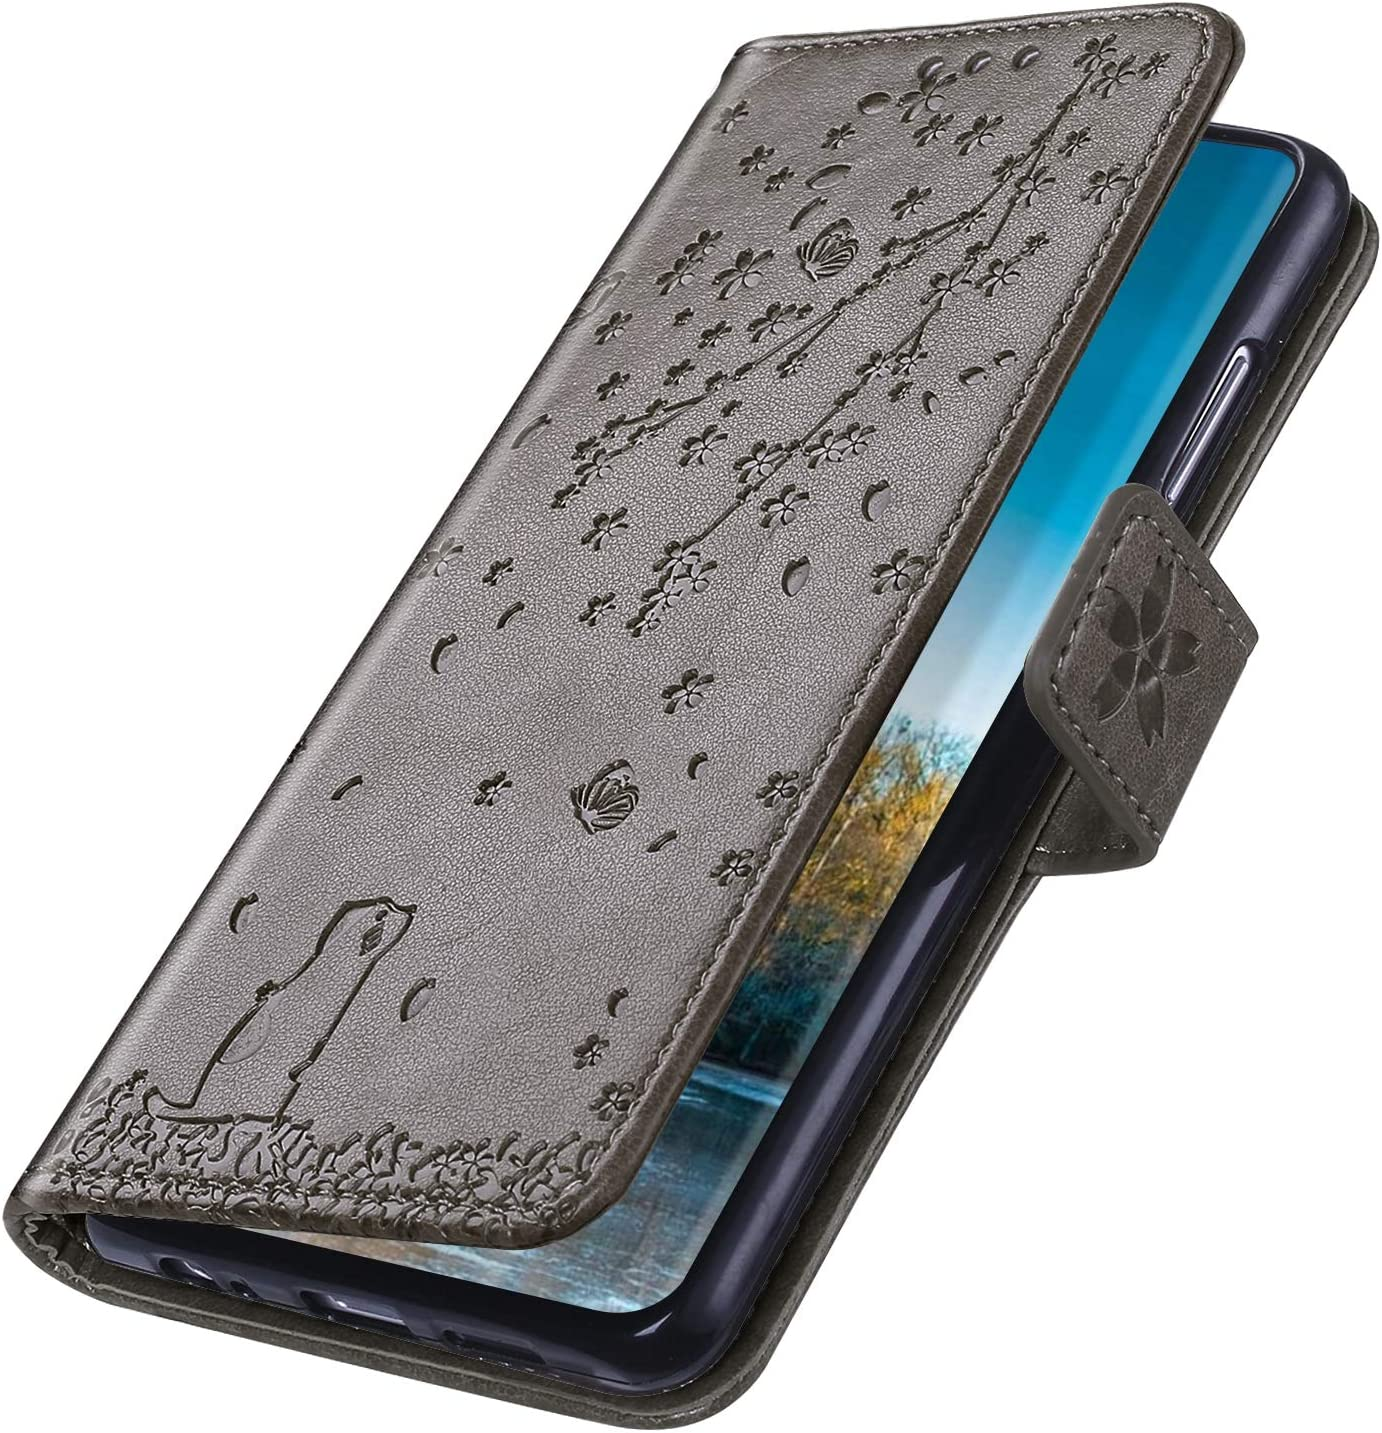 Herbests Compatible with iPhone 11 Case Wallet Flip Cover Cherry Blossom Floral Cat Embossed Slim Protective Case Leather Magnetic Shockproof Folio Cover with Kickstand,Blue